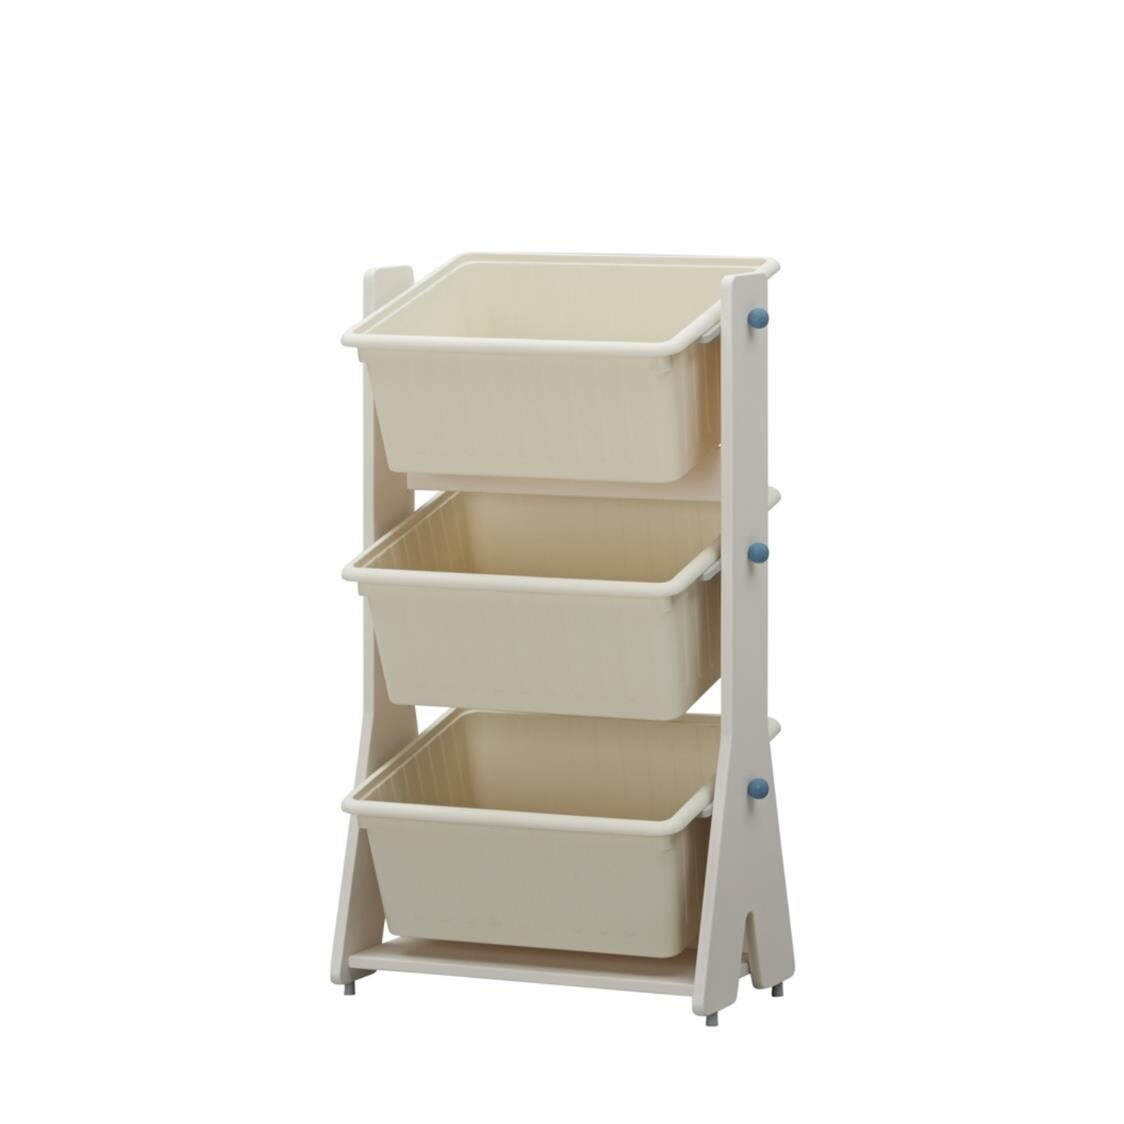 Tinkle Pop Toy Storage IVKS Ivory Sky Blue